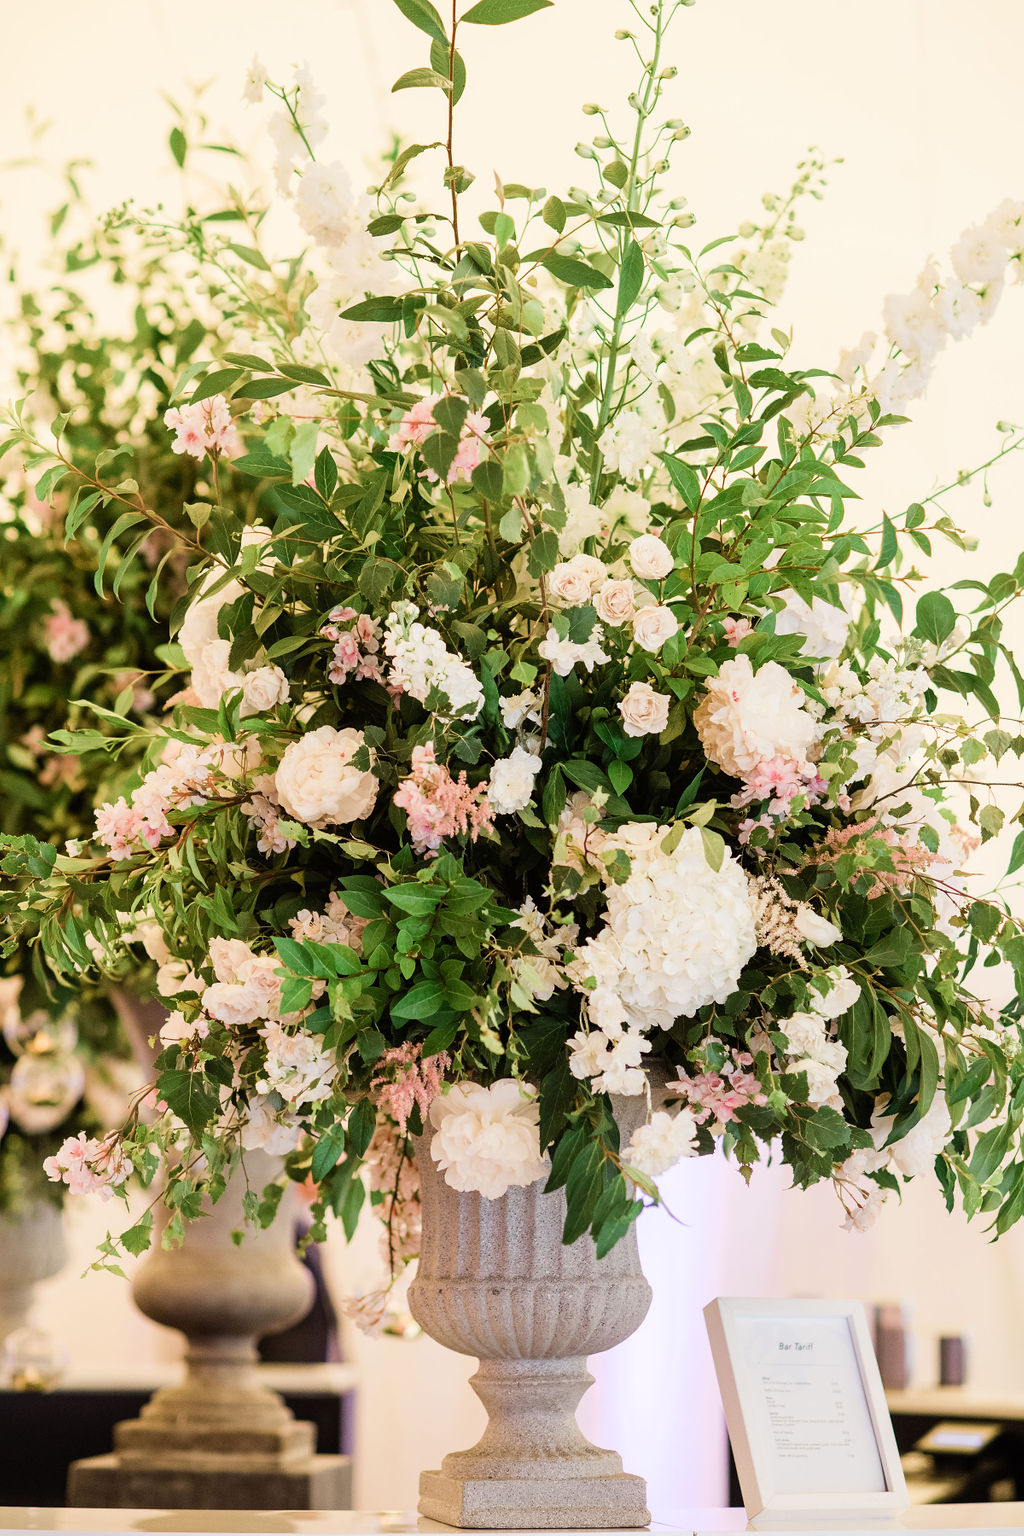 British florals at Chiswick House wedding, London | Sugar Plum Bakes